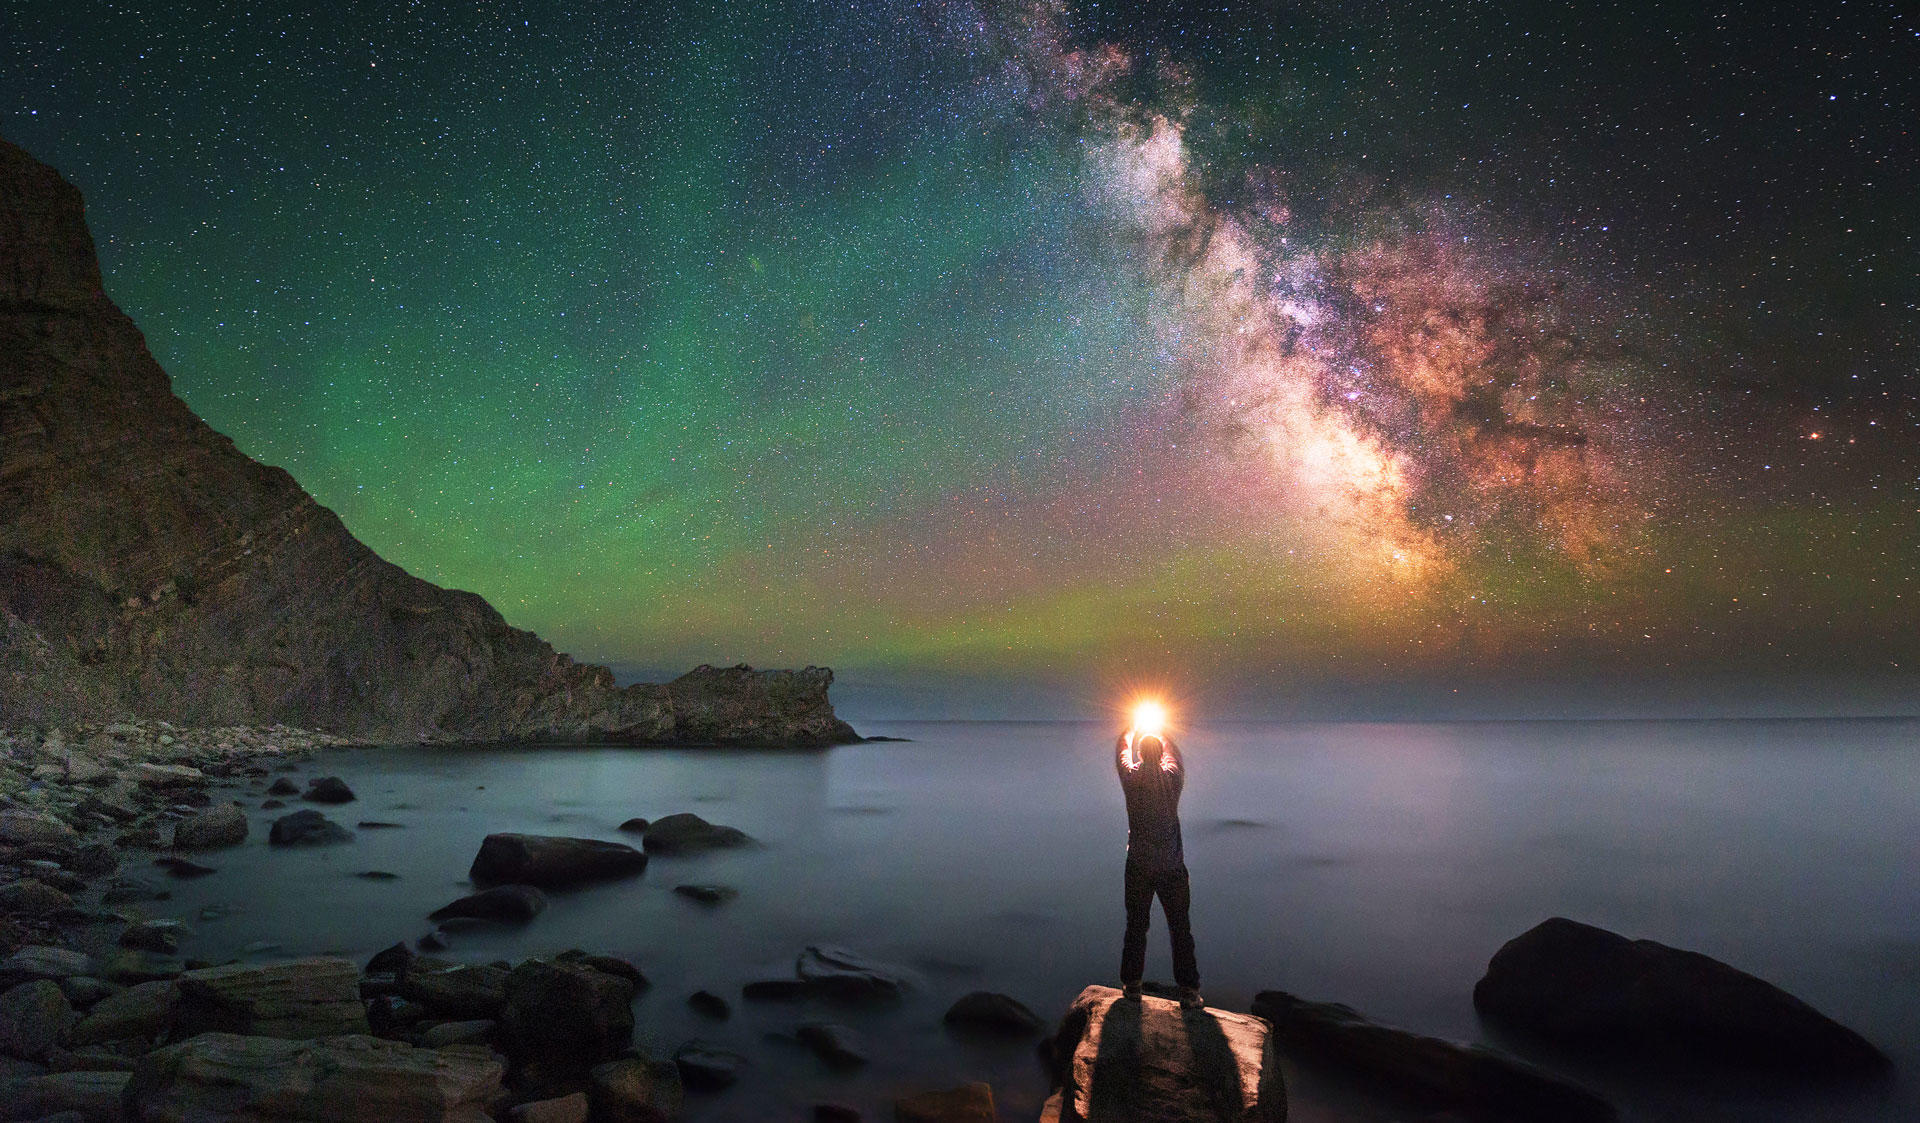 Man holding a light and standing on a rock by the sea and colourful sky. Image of the Master's Programme in  Particle Physics and Astrophysical Sciences at the University of Helsinki.